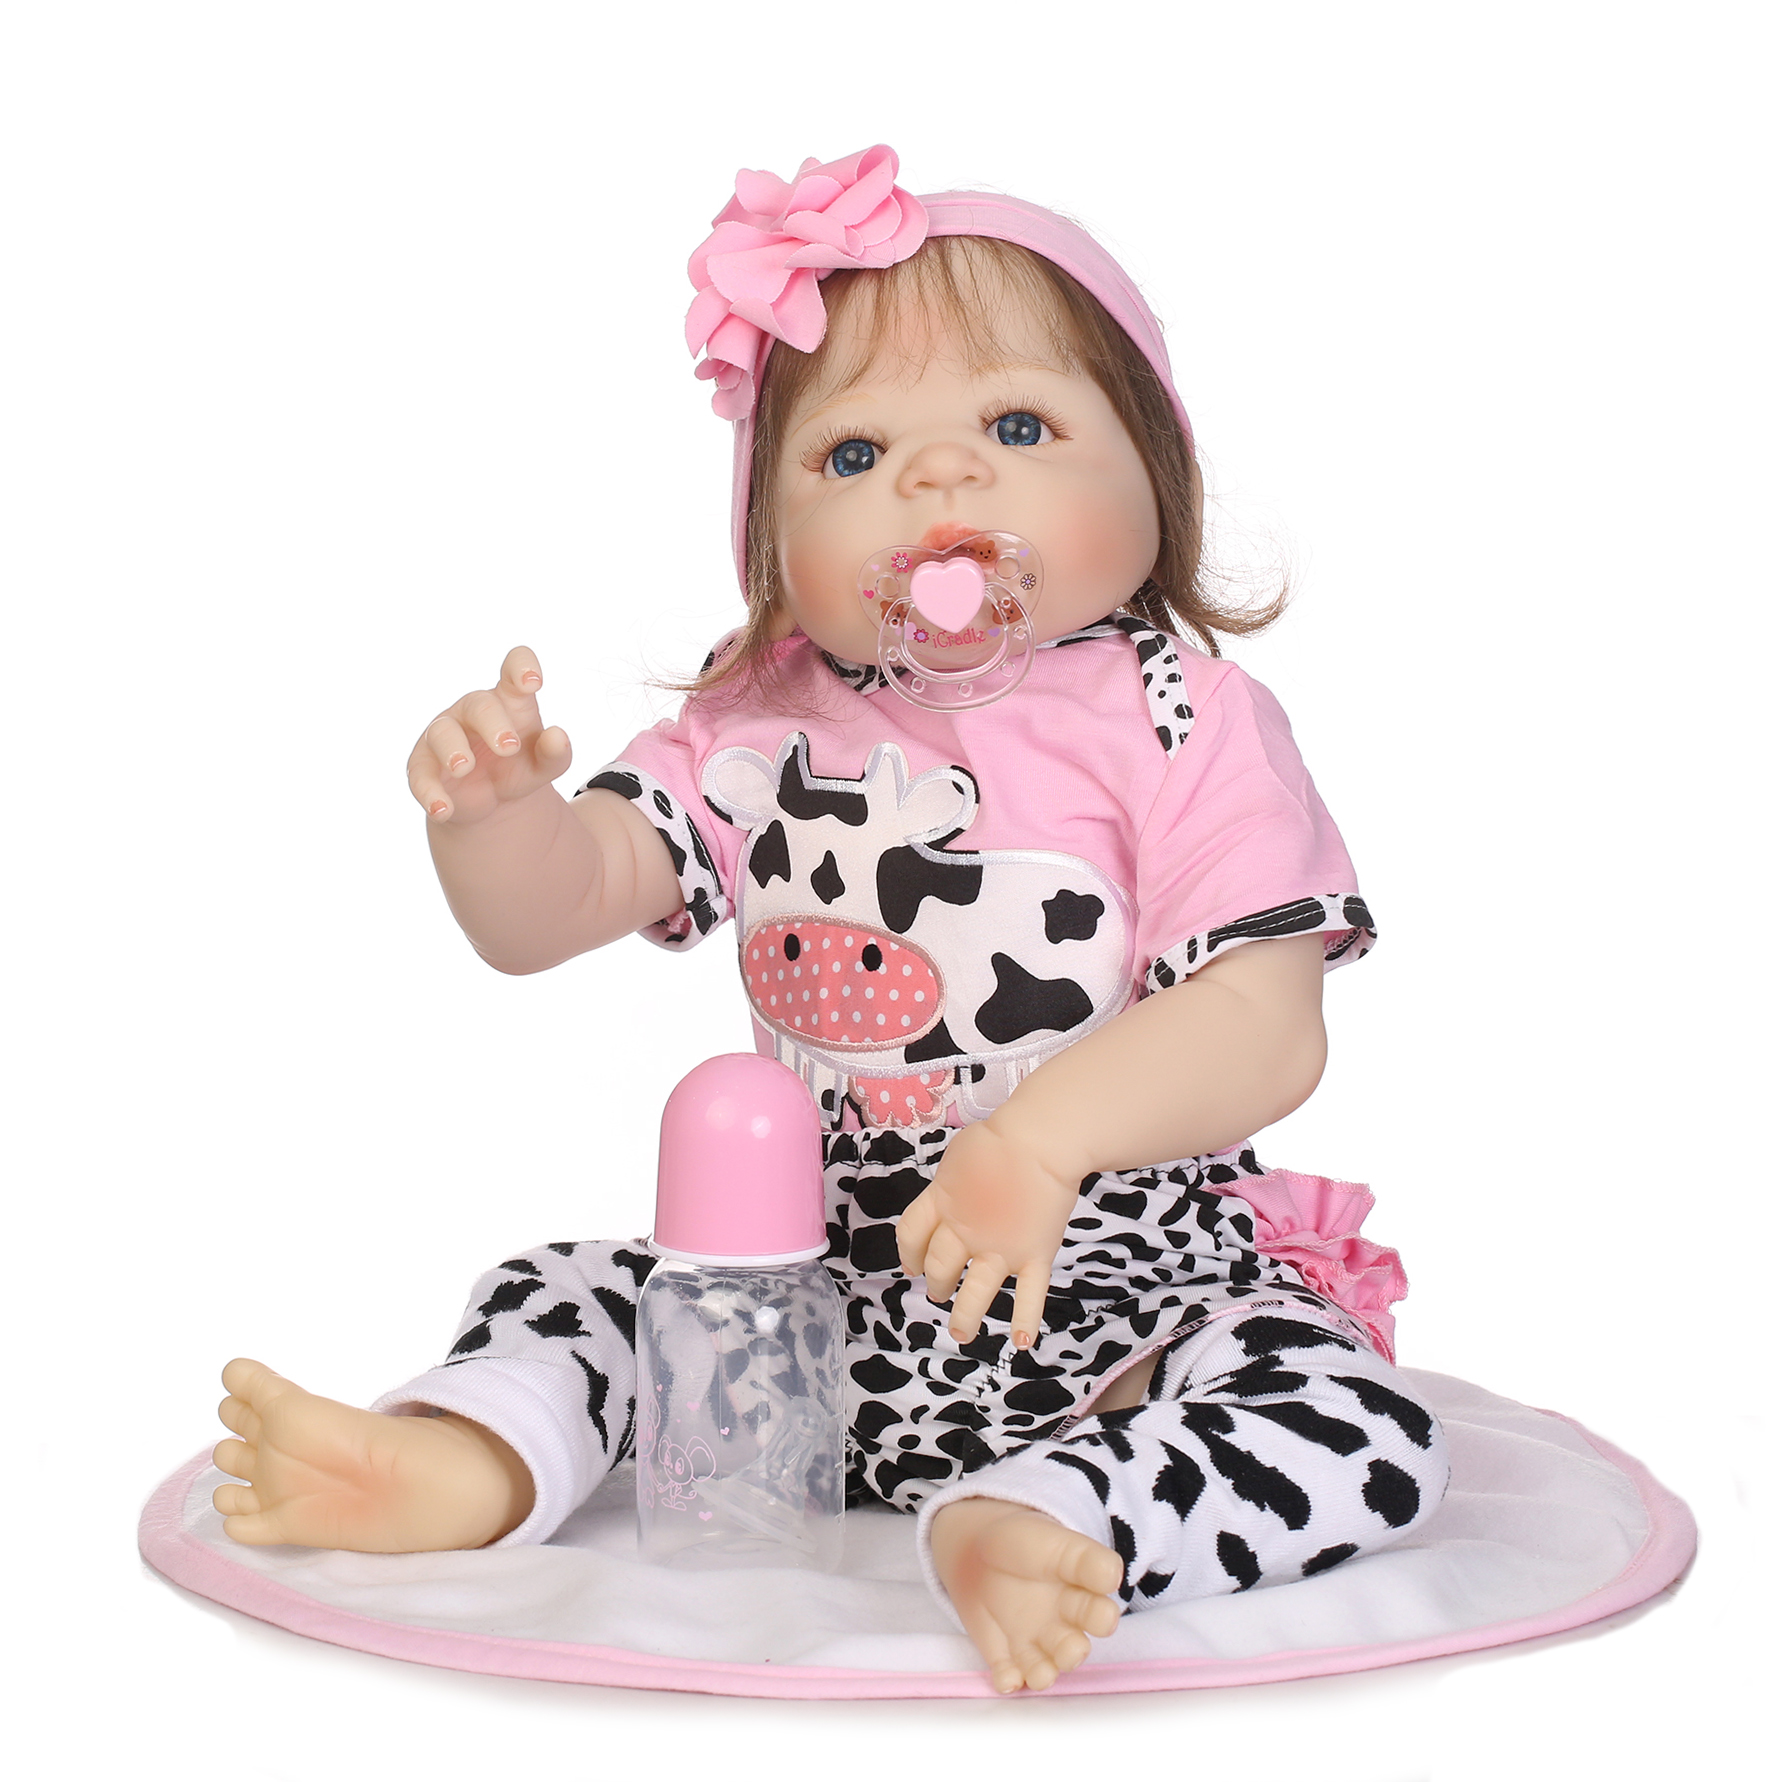 57cm Full Silicone Reborn Baby Doll Toy for Girls Vinyl Newborn Dolls Kids Child Gift Birthday Christmas Girl Brinquedos Toys 23 inch girl toys realistic baby doll reborn girls dolls baby full silicone vinyl newborn babies kids birthday christmas gift